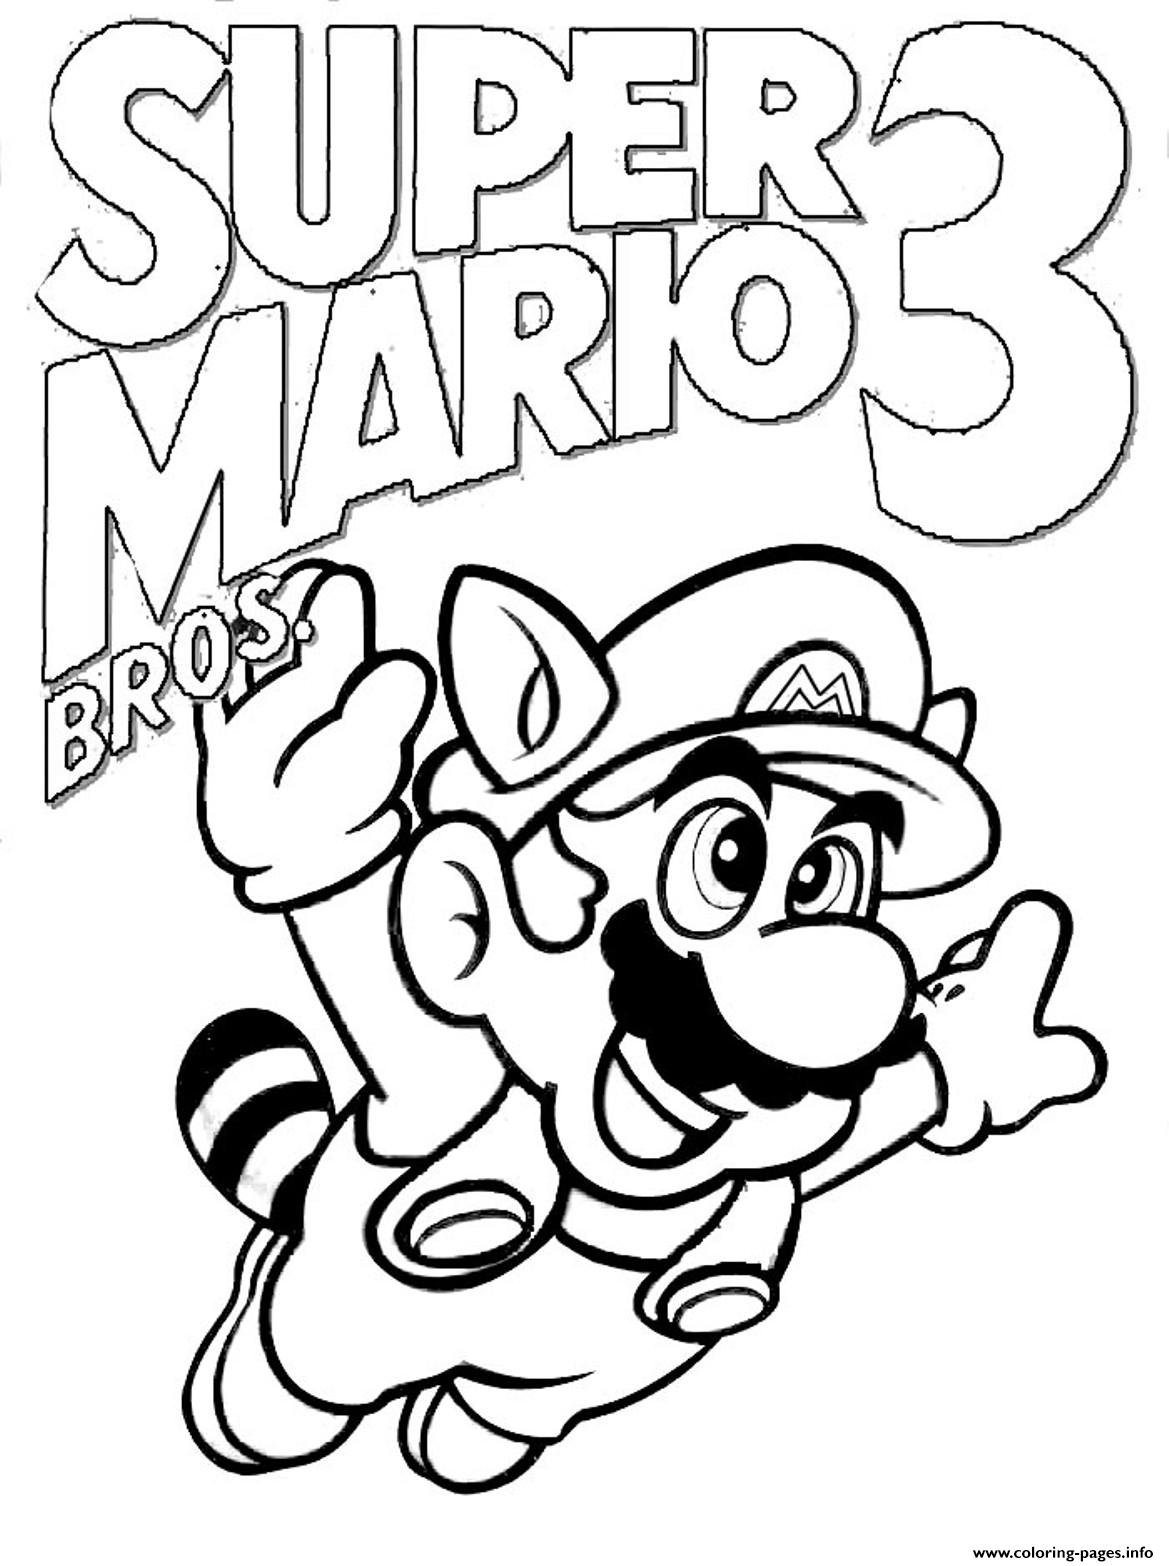 super mario bros s version 32c9a coloring pages printable